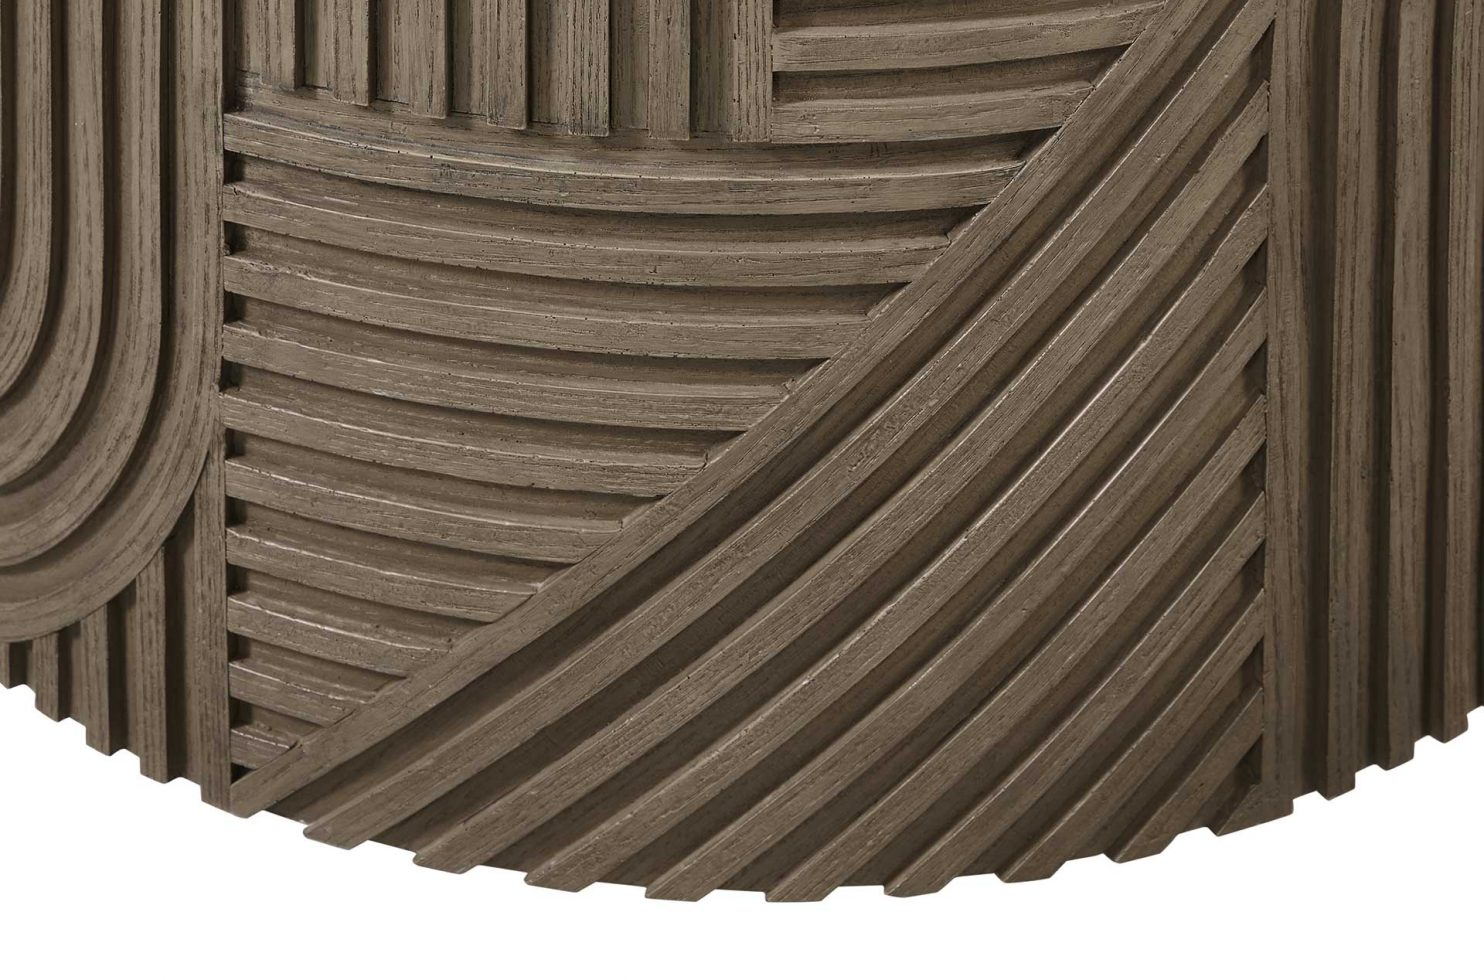 prov frp serenity energy textured round table S1568804146 dtl12 web